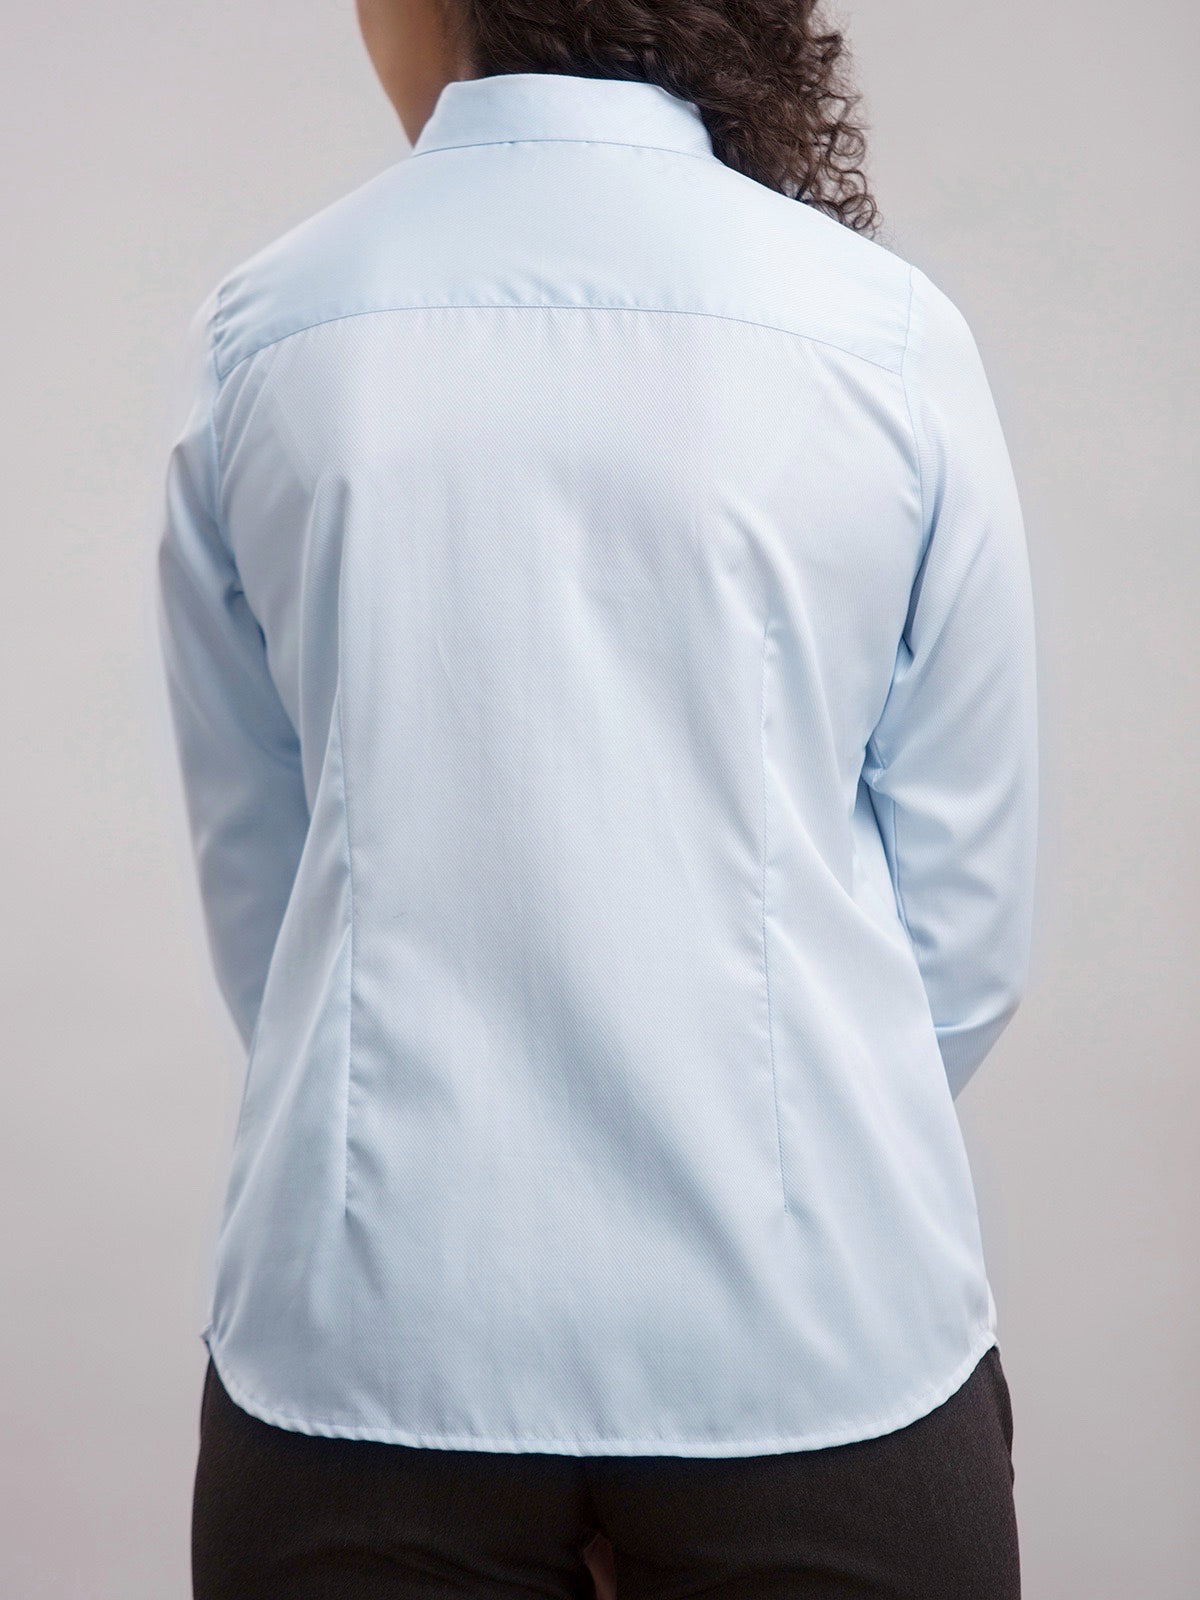 Inverted Pleat Shirt - Light Blue